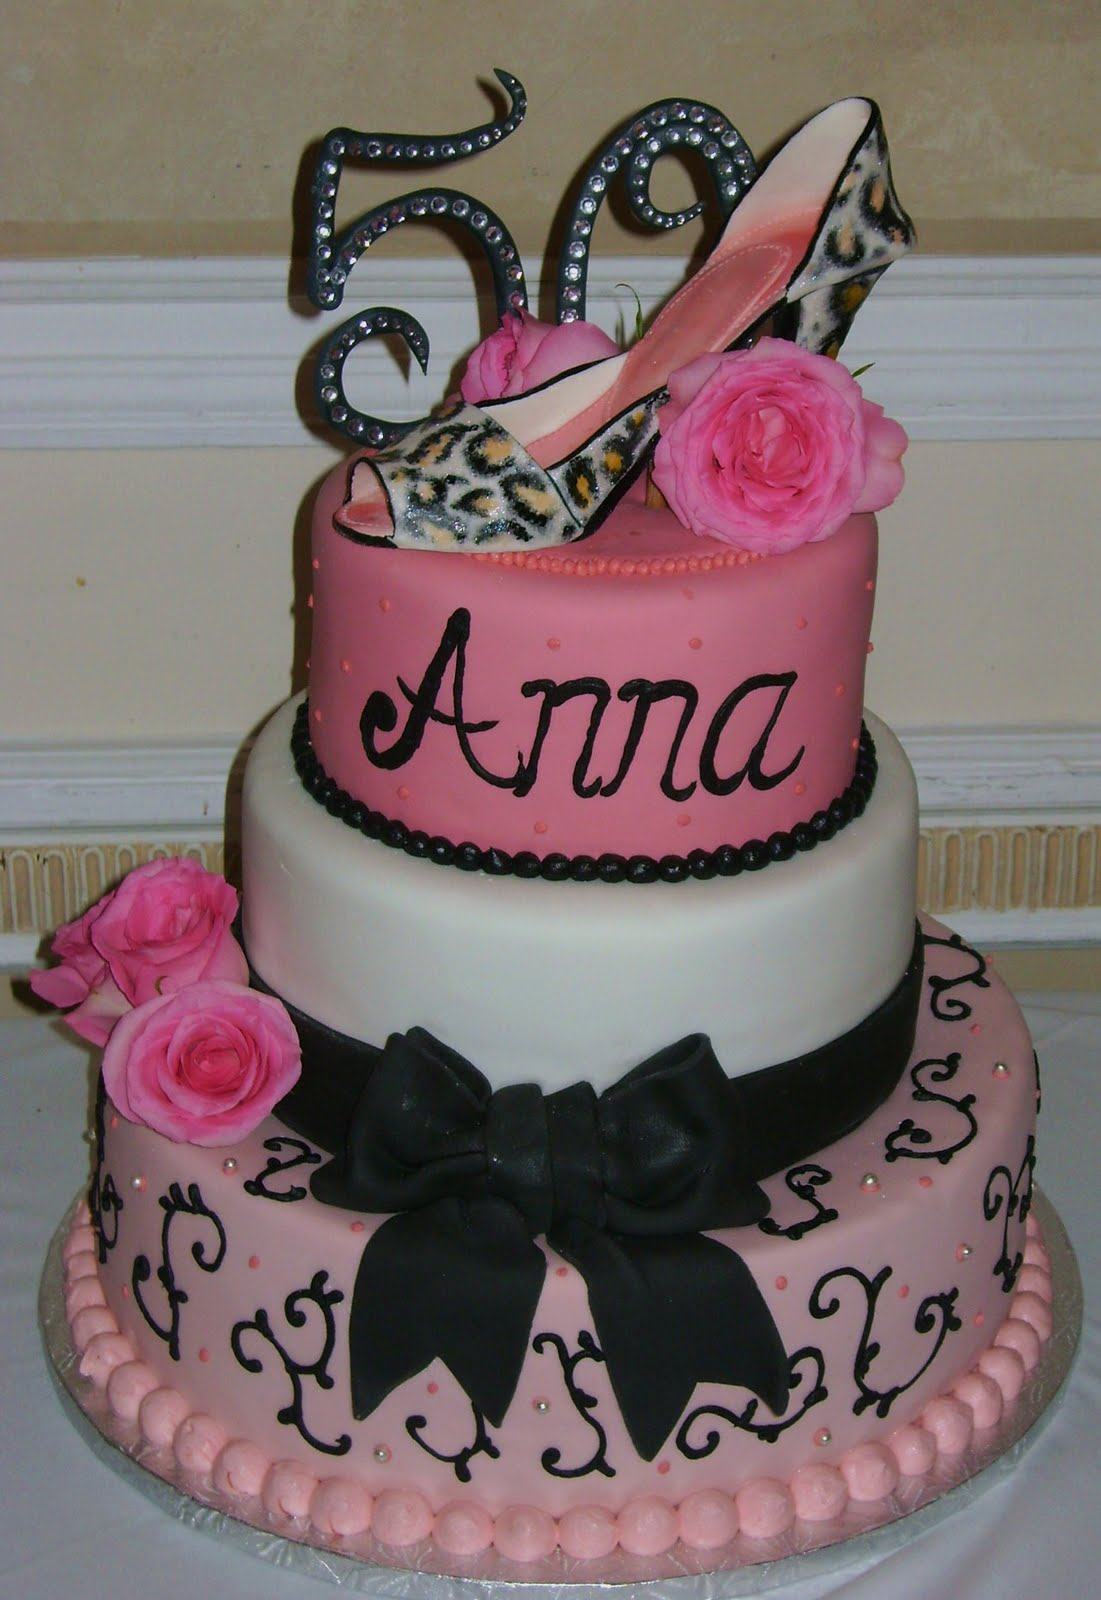 Cake Designs For Birthday Woman : Birthday Cakes Lover: 50th Birthday Cakes